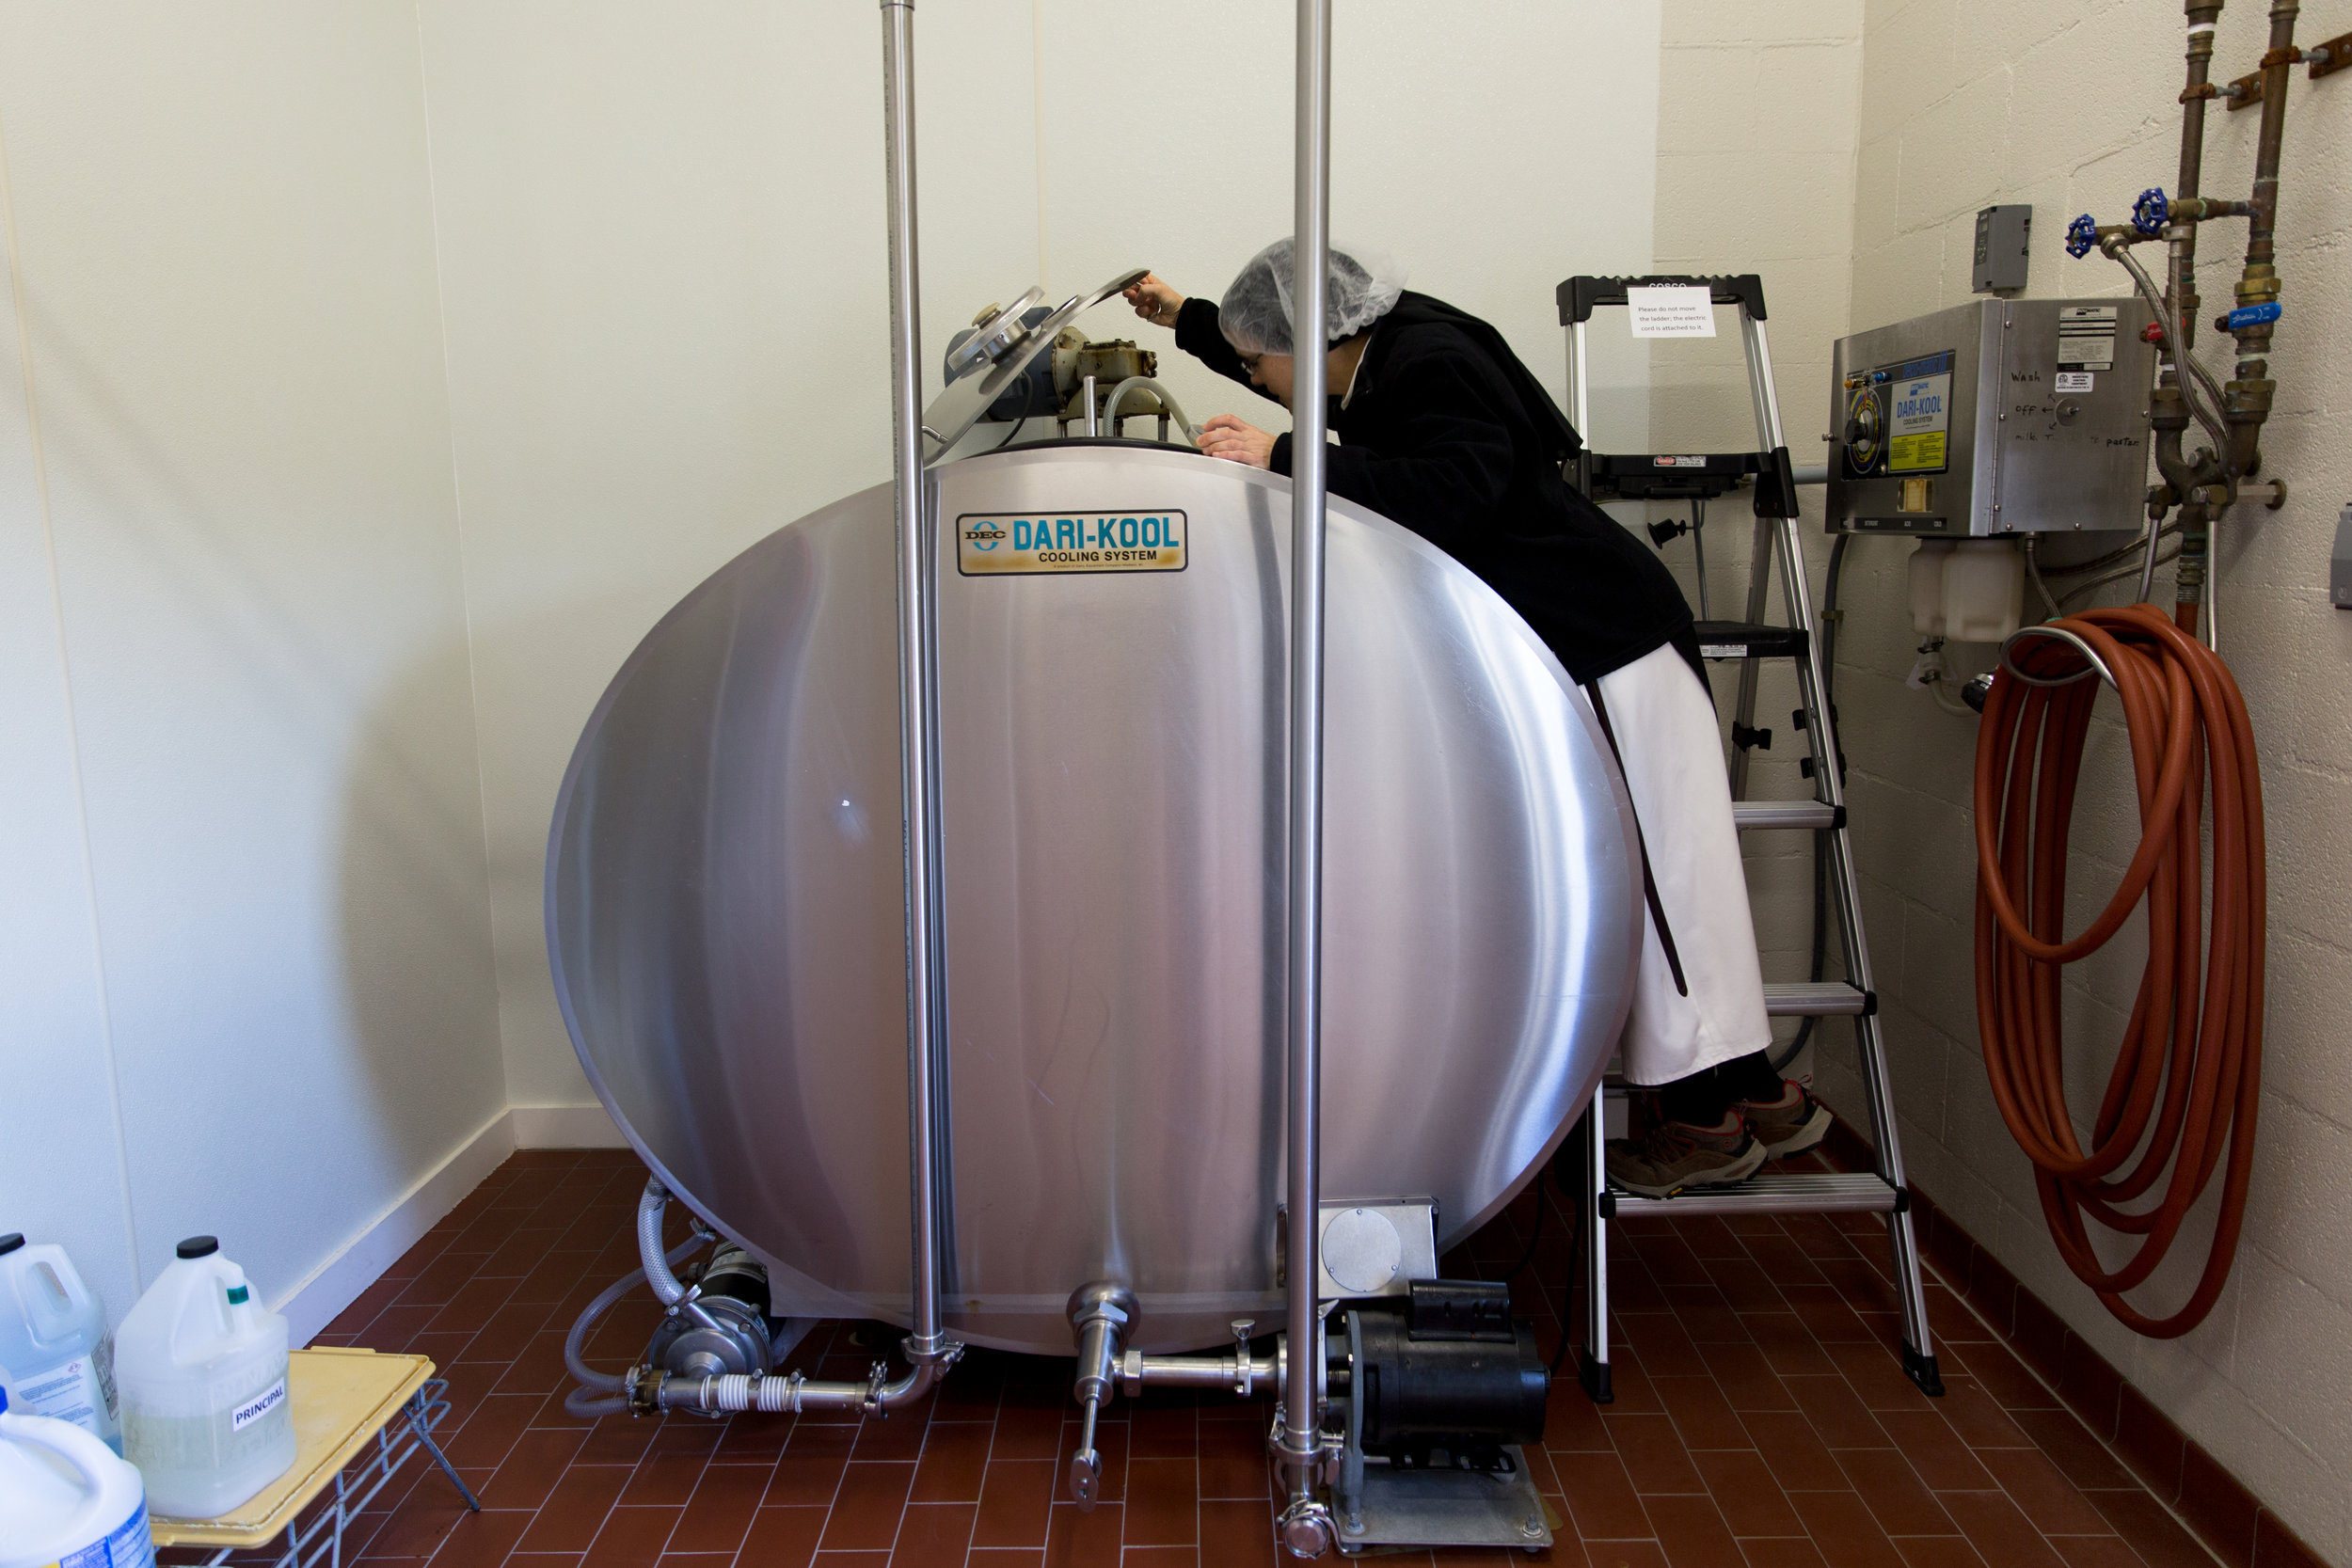 """Sister Maria checks on the empty milk tank before delivery March 4, 2019 in Crozet, Virginia. """"We get our milk delivered regularly and locally. We like to know where everything is coming from and exactly what gets put in,"""" Maria said."""